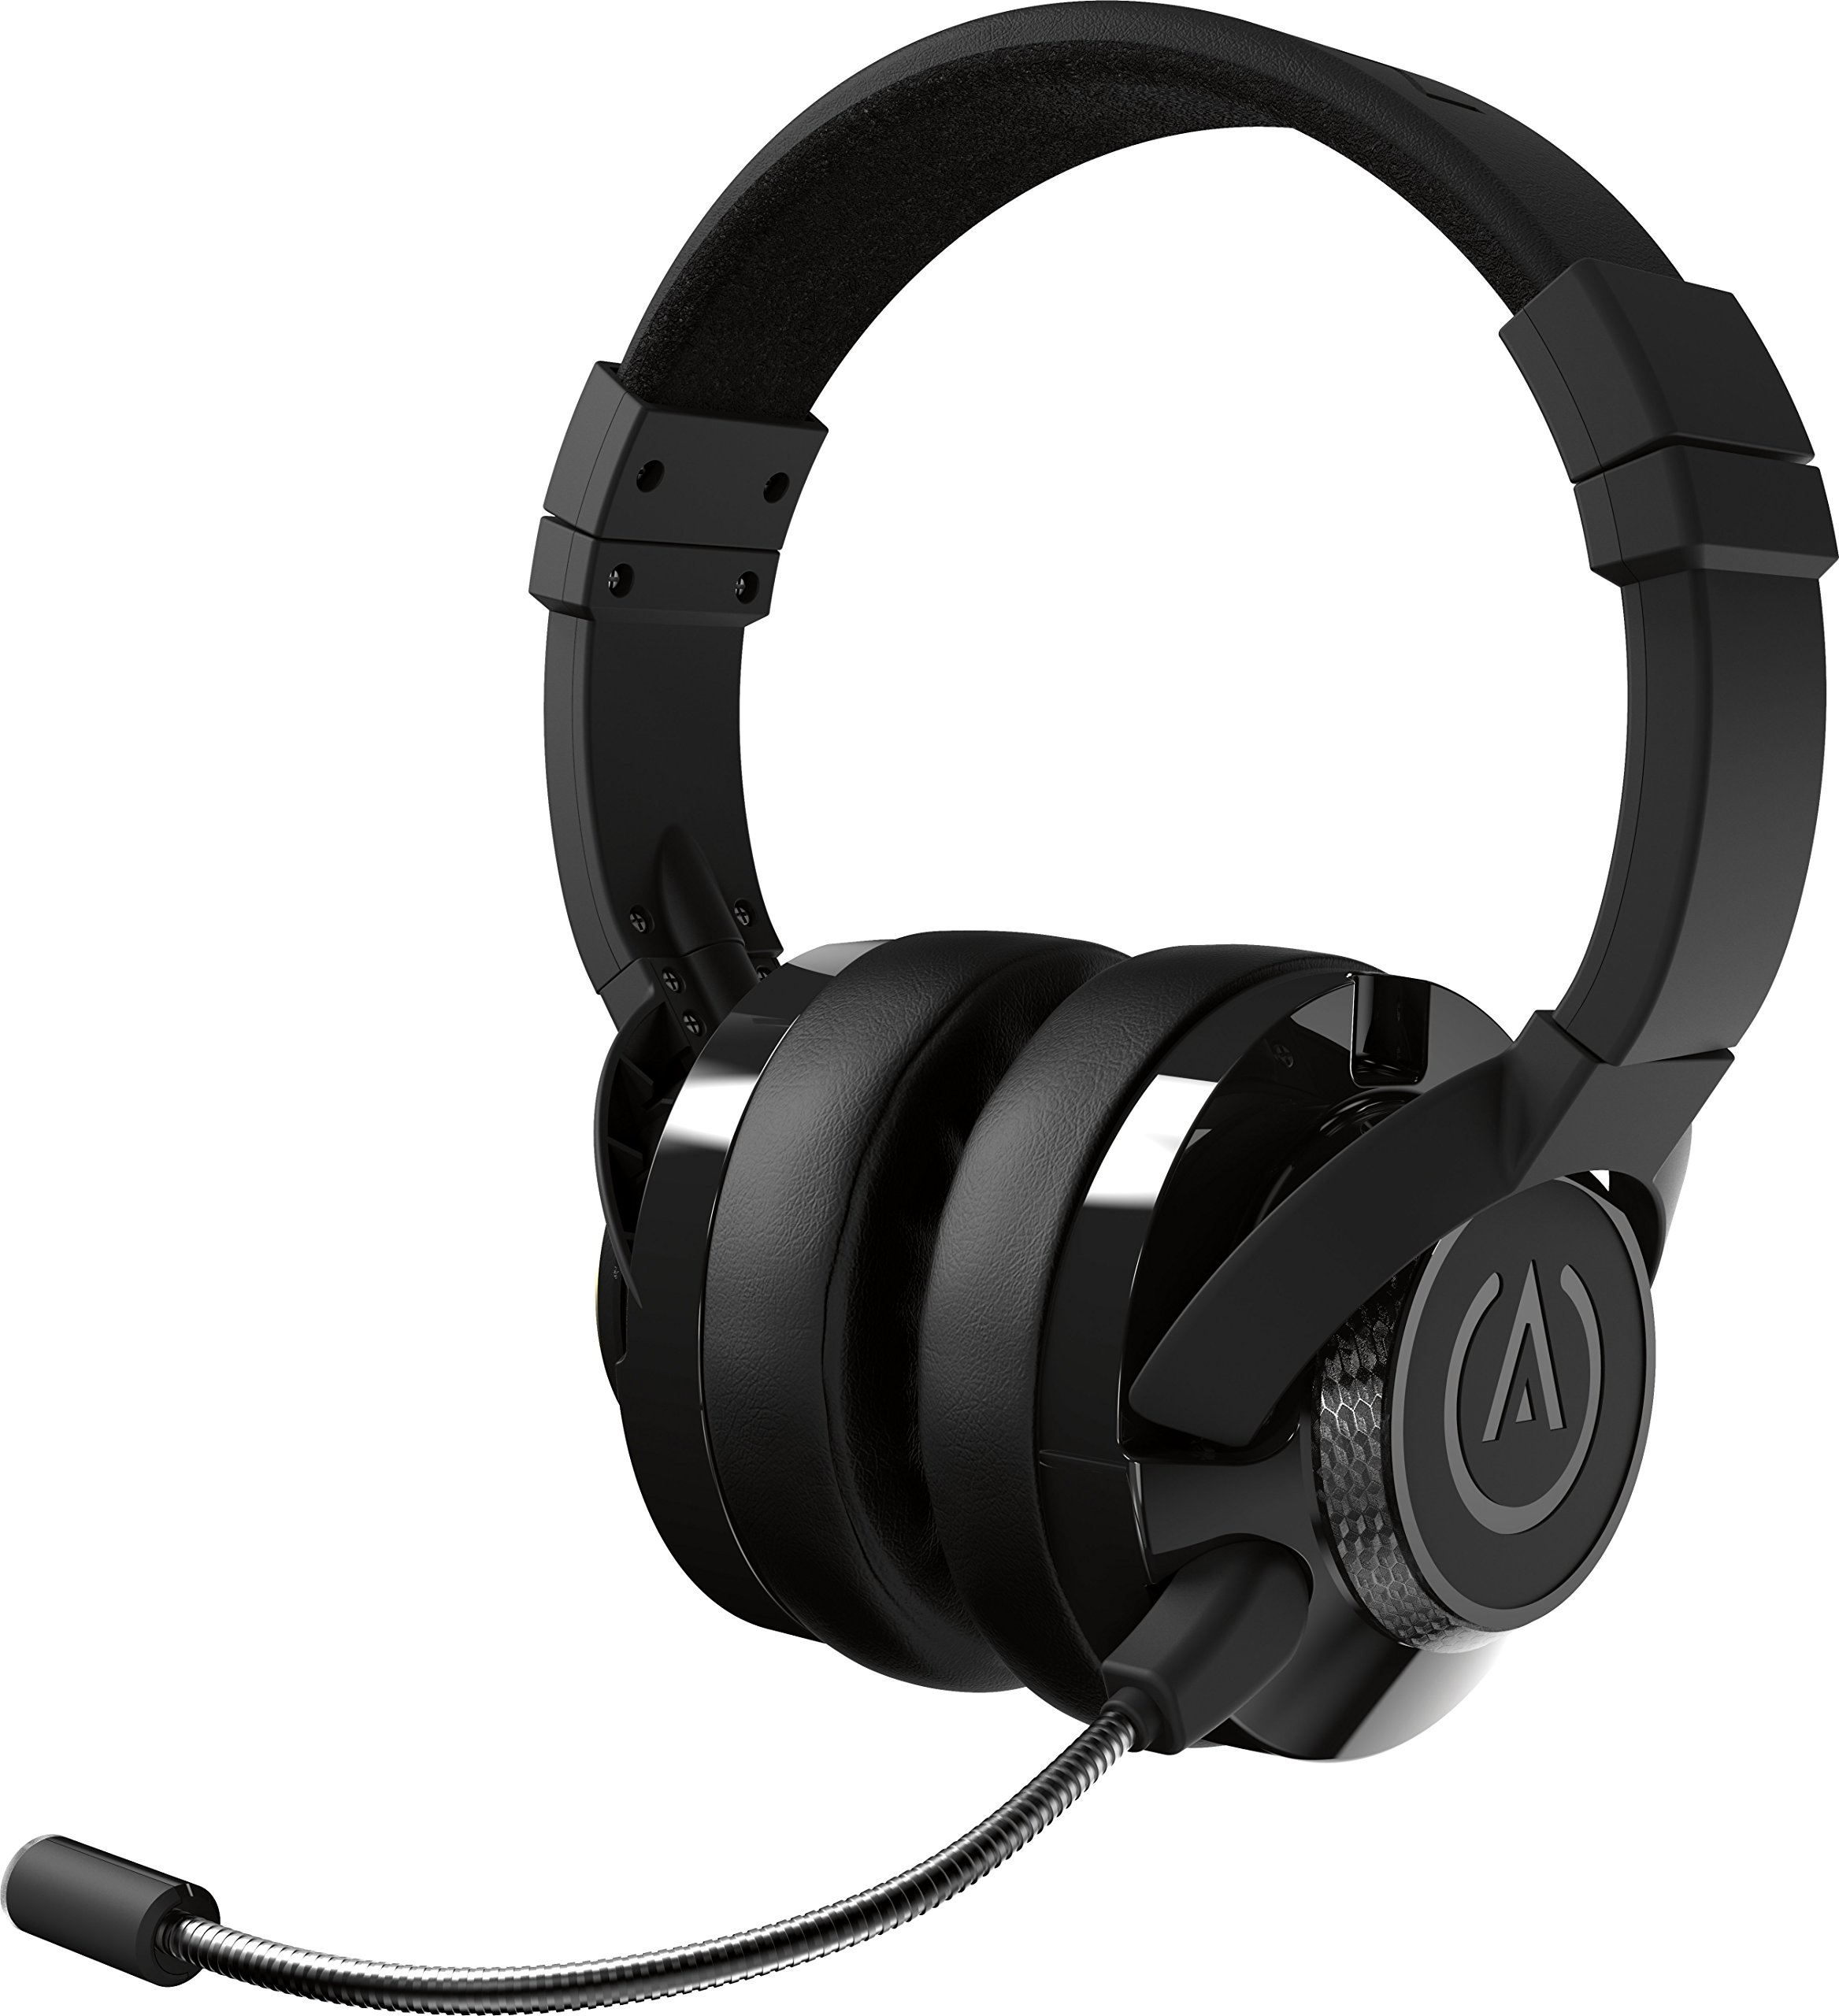 PowerA Fusion Wired Stereo Gaming Headset with MIc for PlayStation 4, Xbox One, Xbox One X, Xbox One S, Xbox 360, Nintendo Switch, PC, Mac, VR, Android, and IOS - Black by PowerA